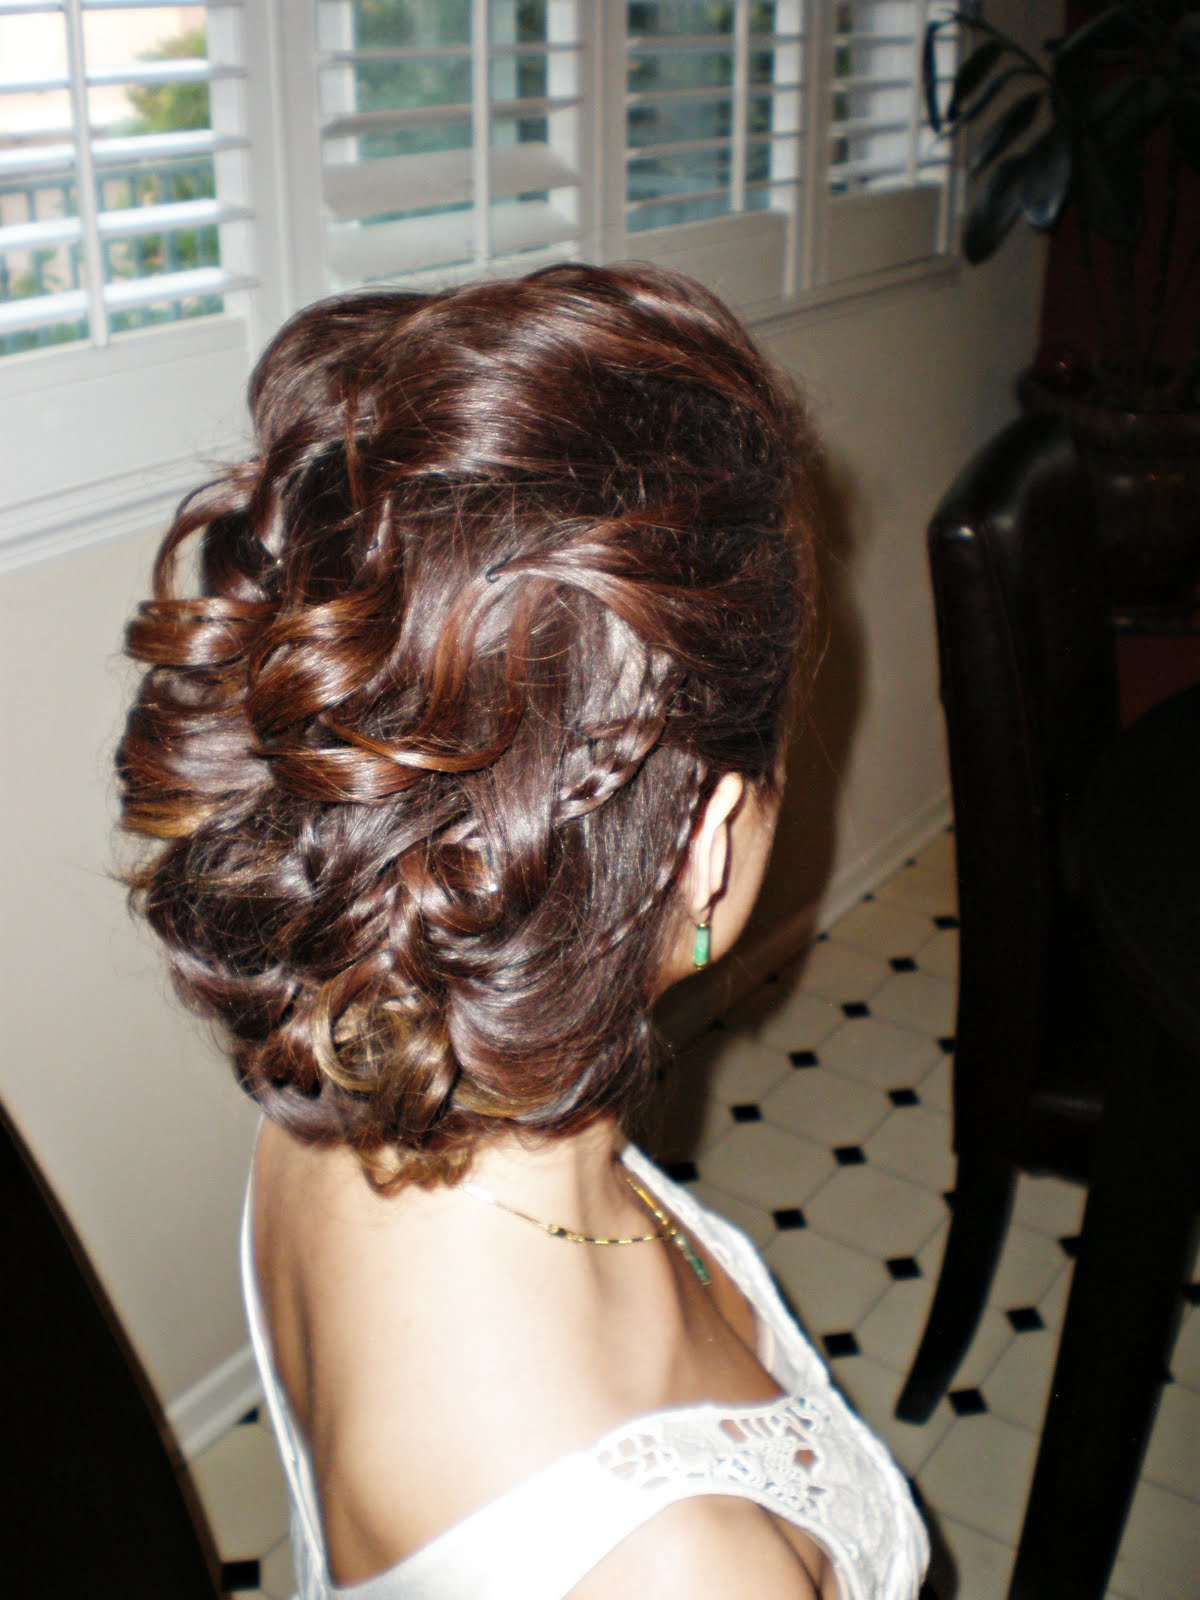 My 1st hair trial photo 1